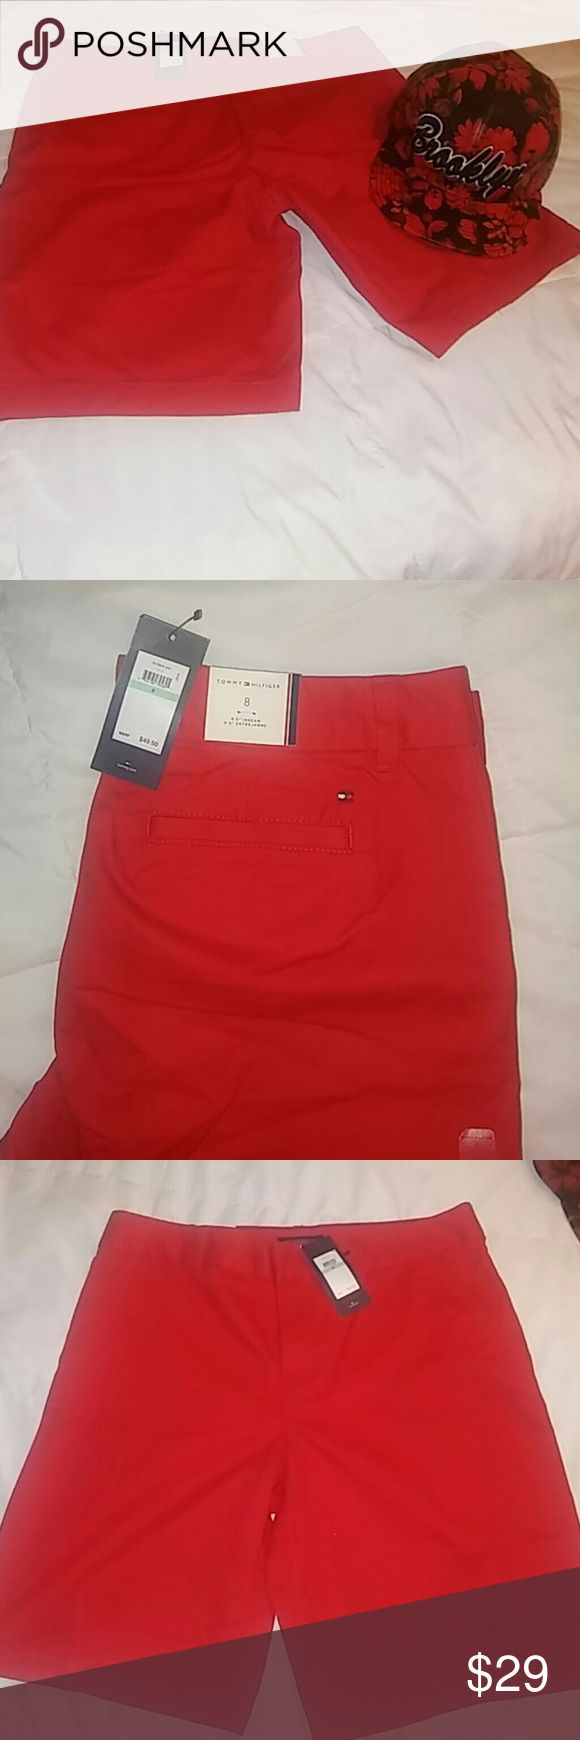 """Women's """"Tommy Hilfiger"""" Red Shorts Women's red Bermuda style shorts w/ Tommy Hilfiger logo embroidered over the right back pocket.  100% cotton. Size 8 Tommy Hilfiger Shorts Bermudas"""